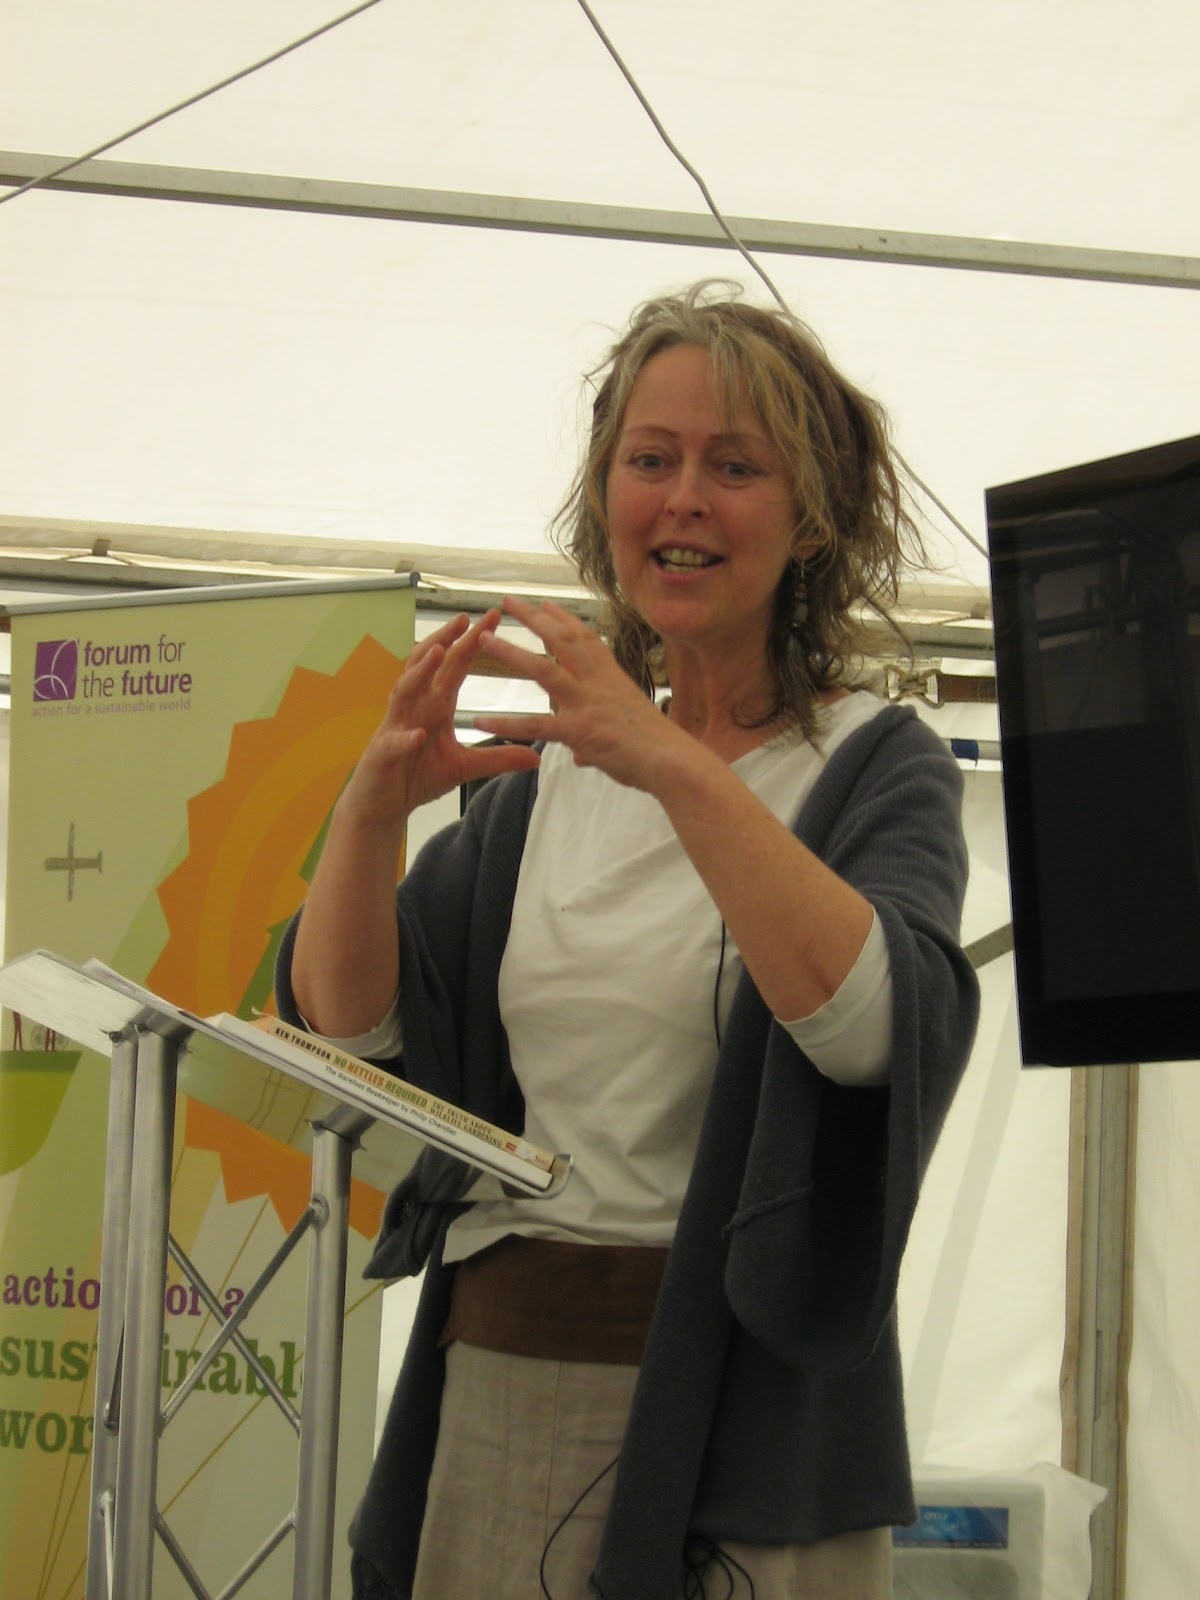 brigit strawbridge talks i speak about the importance of bees the differences between honeybees bumblebees and solitary bees the problems they all face focussing on habitat